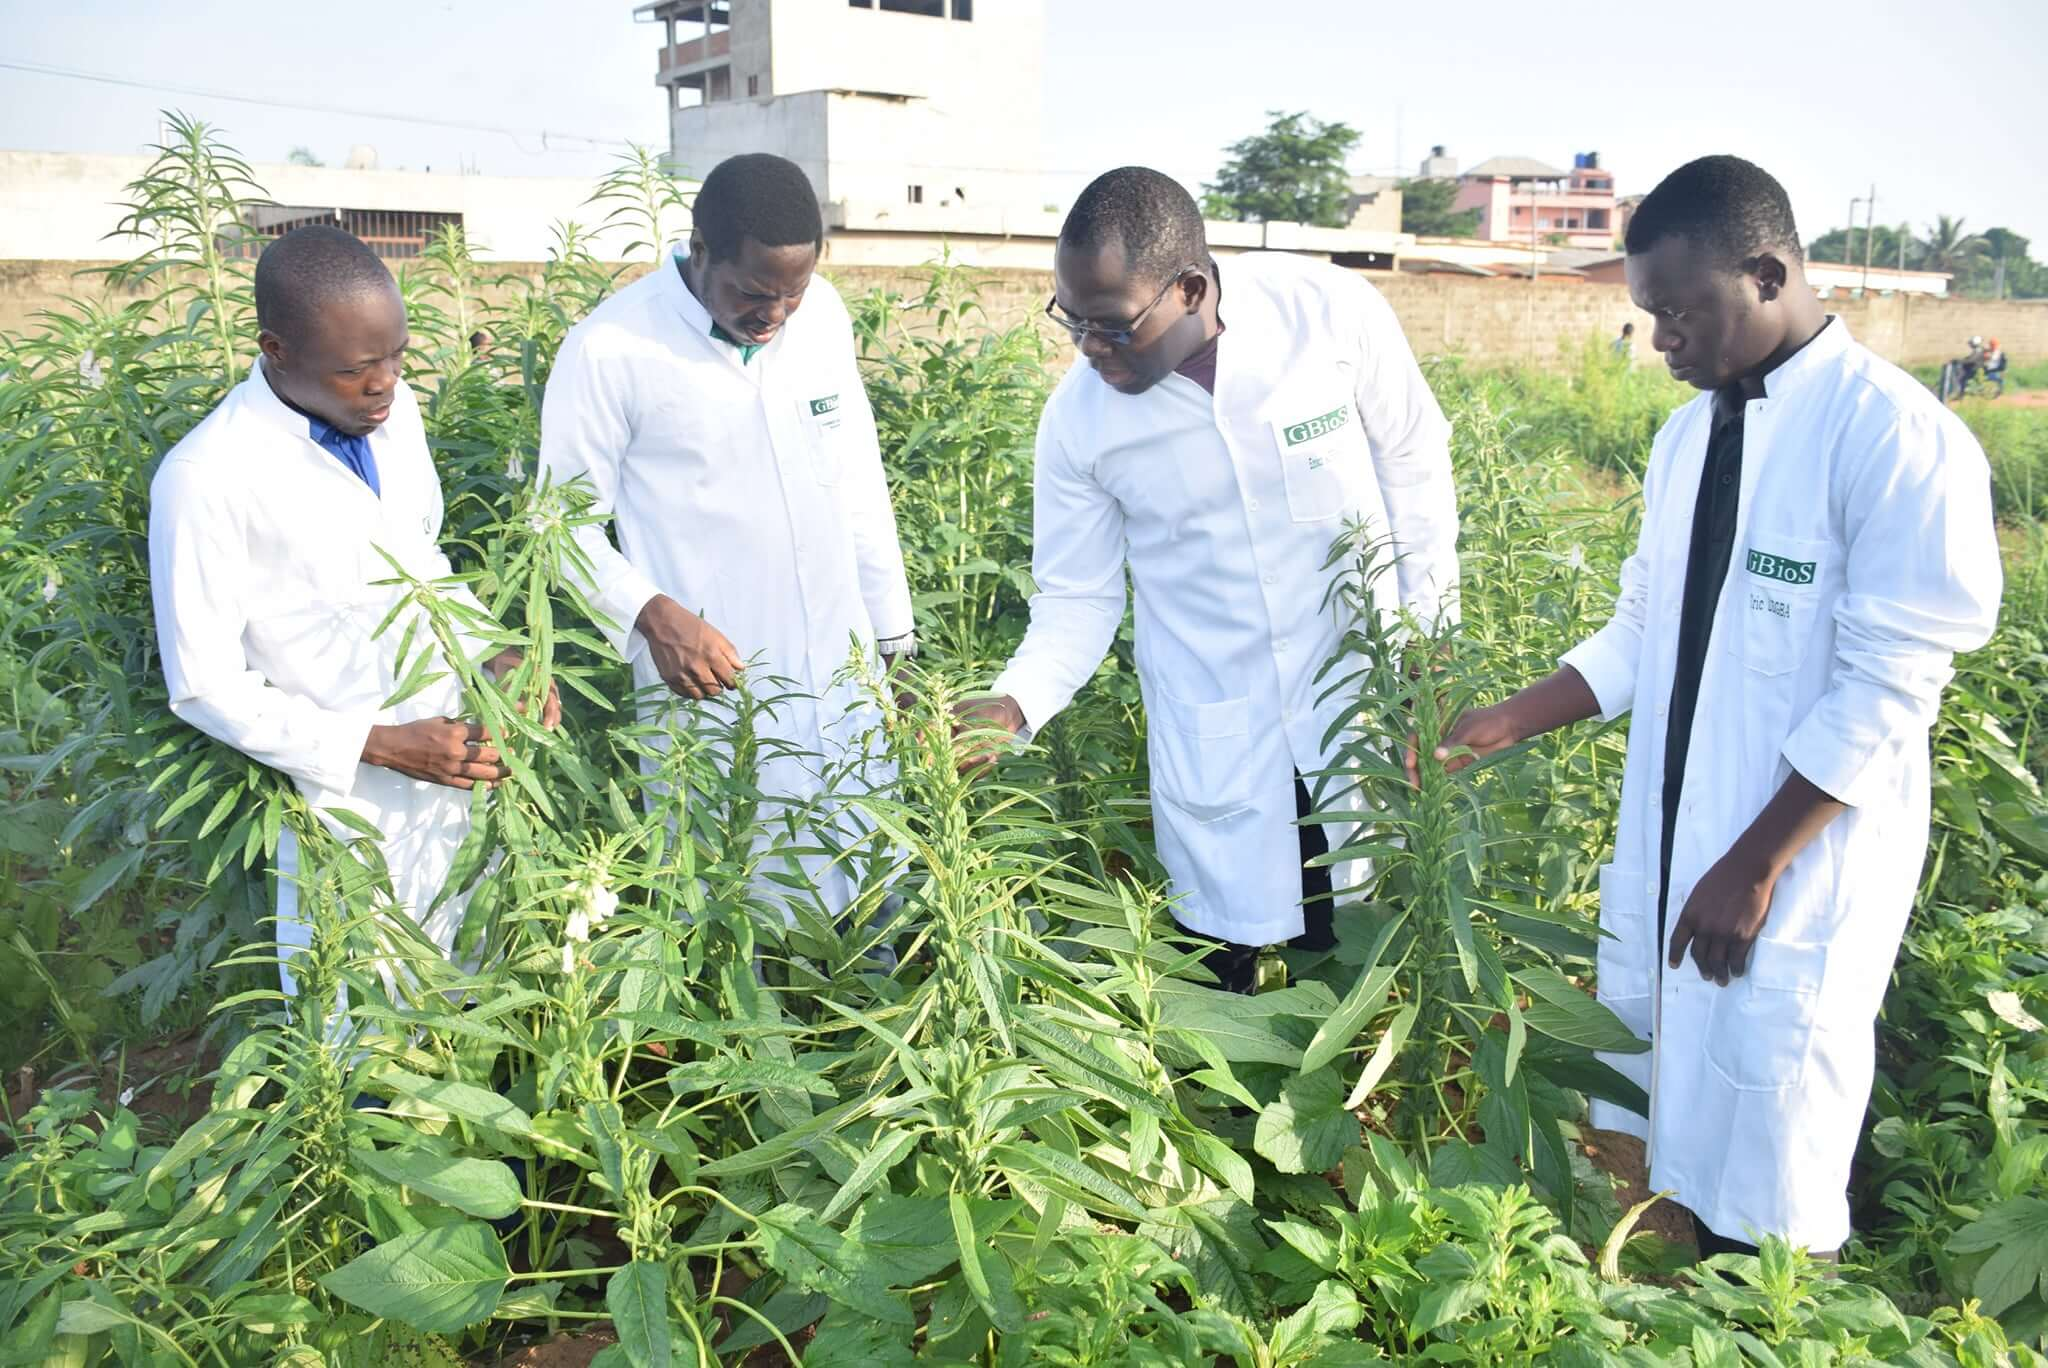 Dr. Enoch Achigan-Dako inspects crops in the university's teaching fields with his students